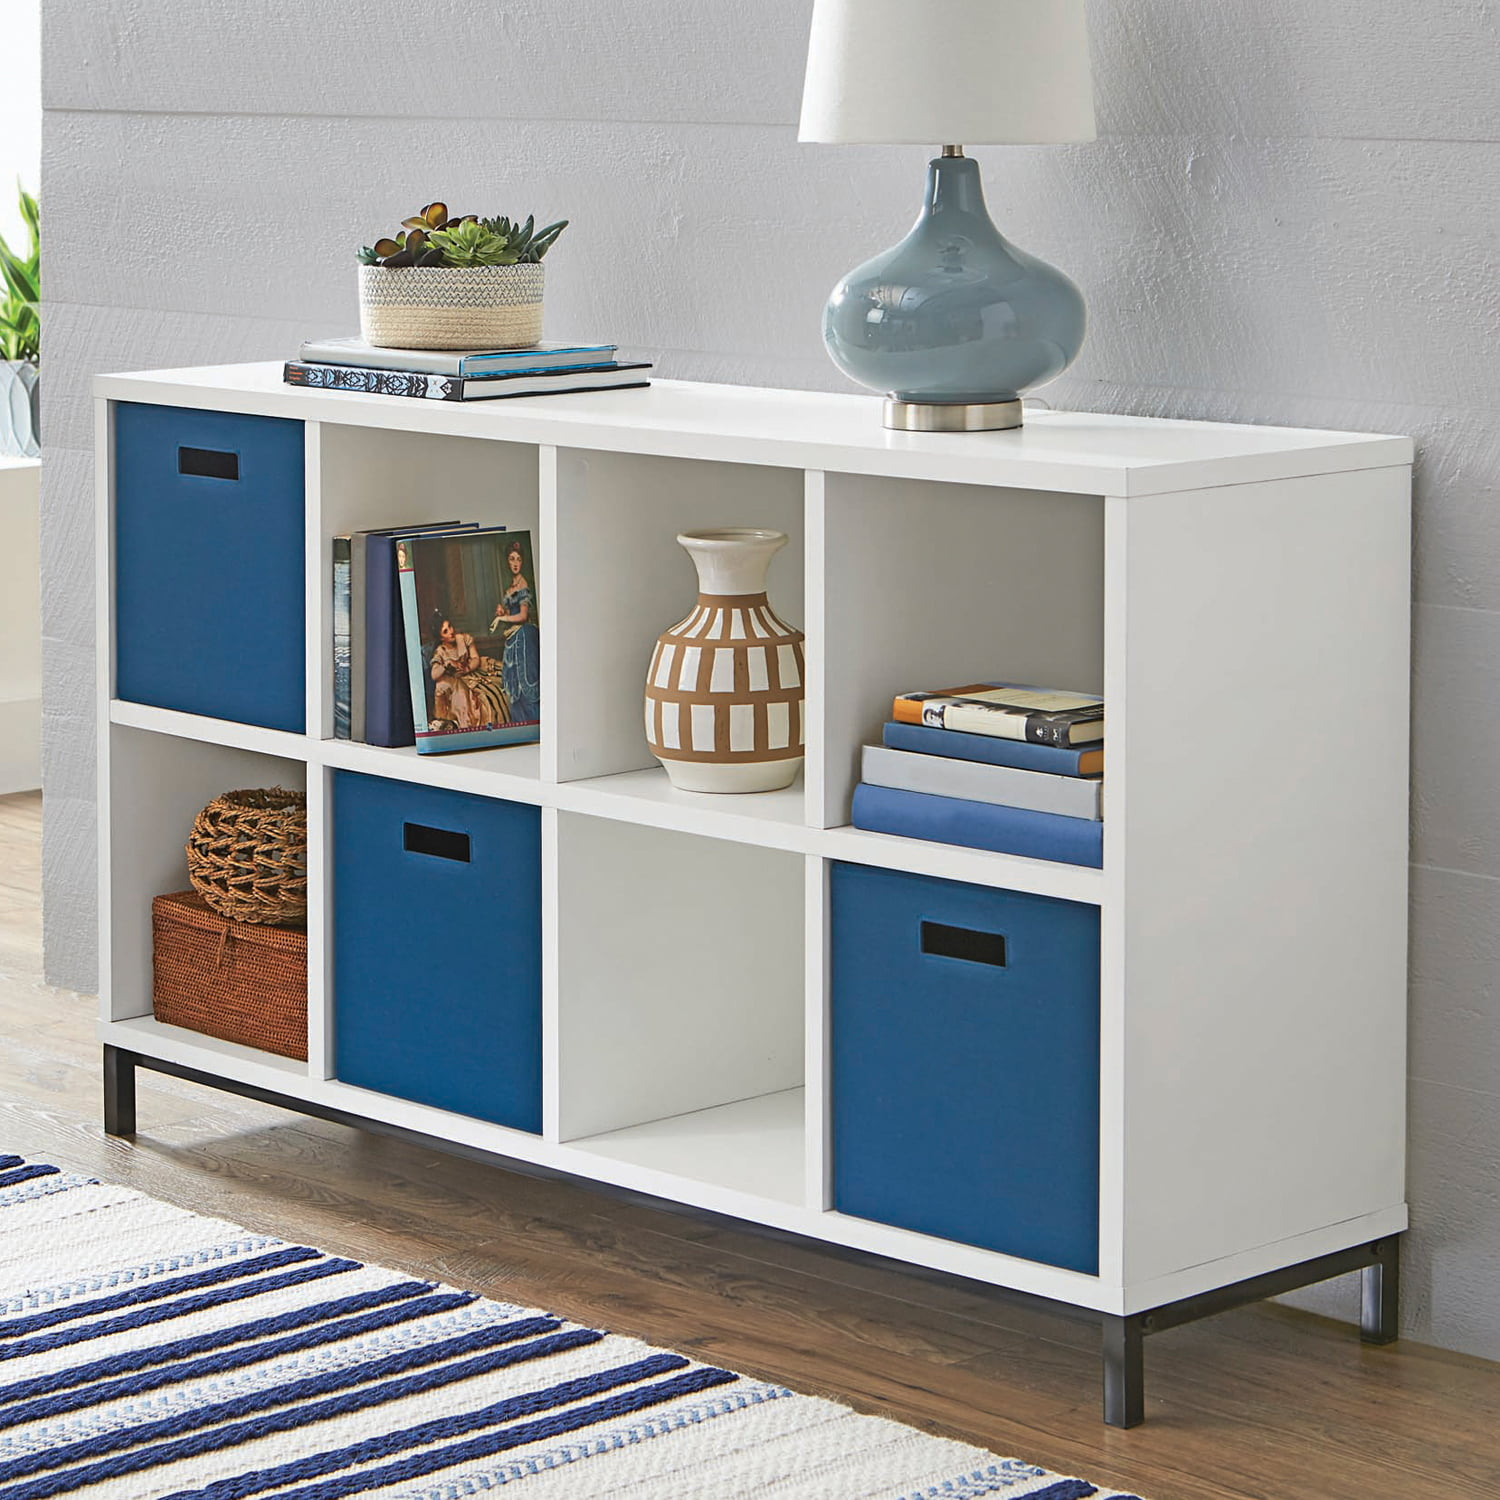 New Office Living Room Bedroom 8 Cube Storage Organizer With Metal Base White